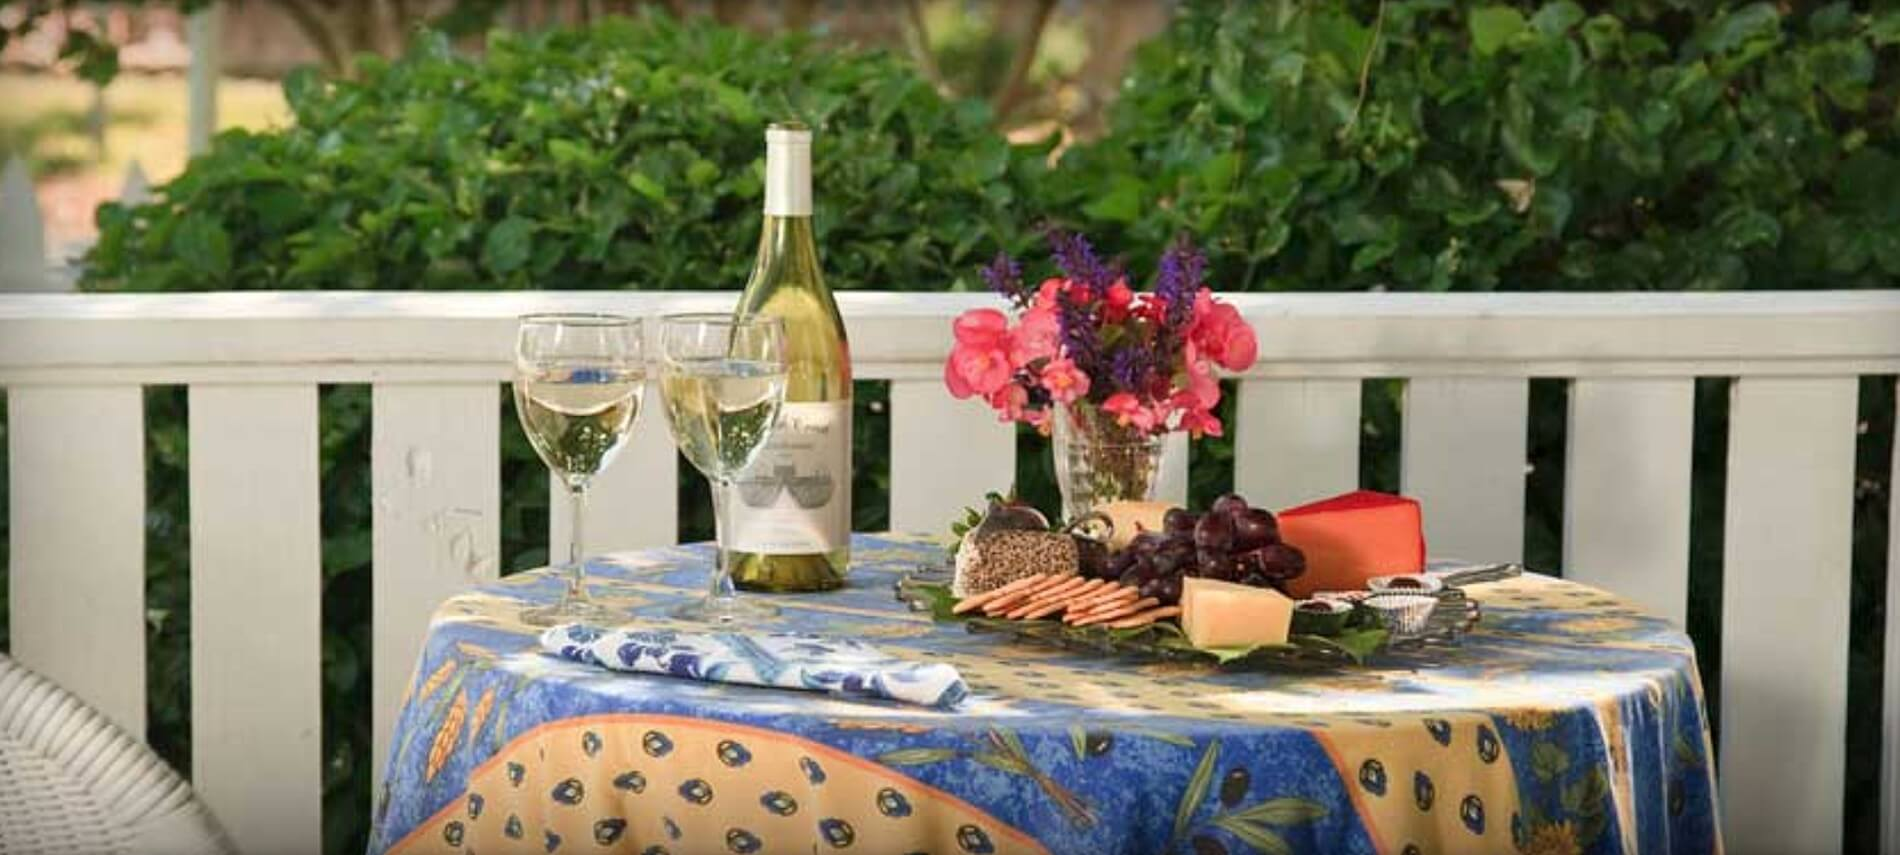 Bottle of white wine with glasses and a cheese tray on a covered table outdoors.